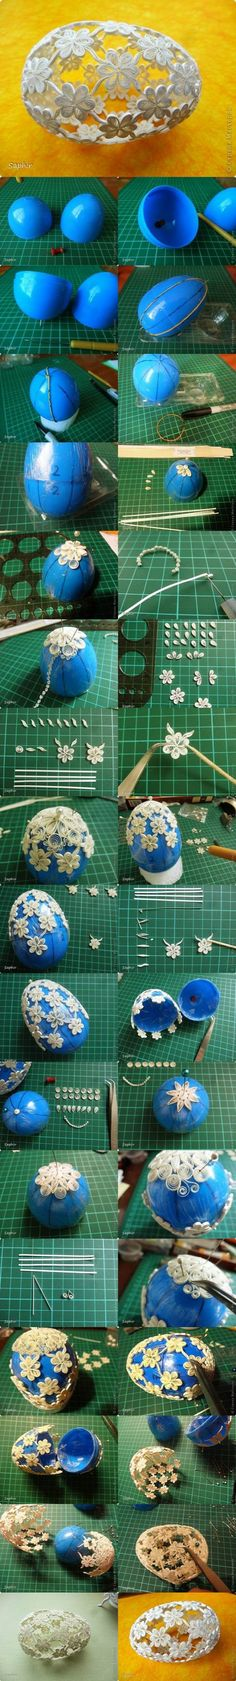 The effect of the quilling flowers in an egg shape is really special. This is a fantastic project to DIY Easter egg with Quilling Flower Decoration. Quilling Tutorial, Diy Quilling, Quilling Paper Craft, Quilling Patterns, Quilling Designs, Quilling Instructions, Egg Crafts, Easter Crafts, Arts And Crafts